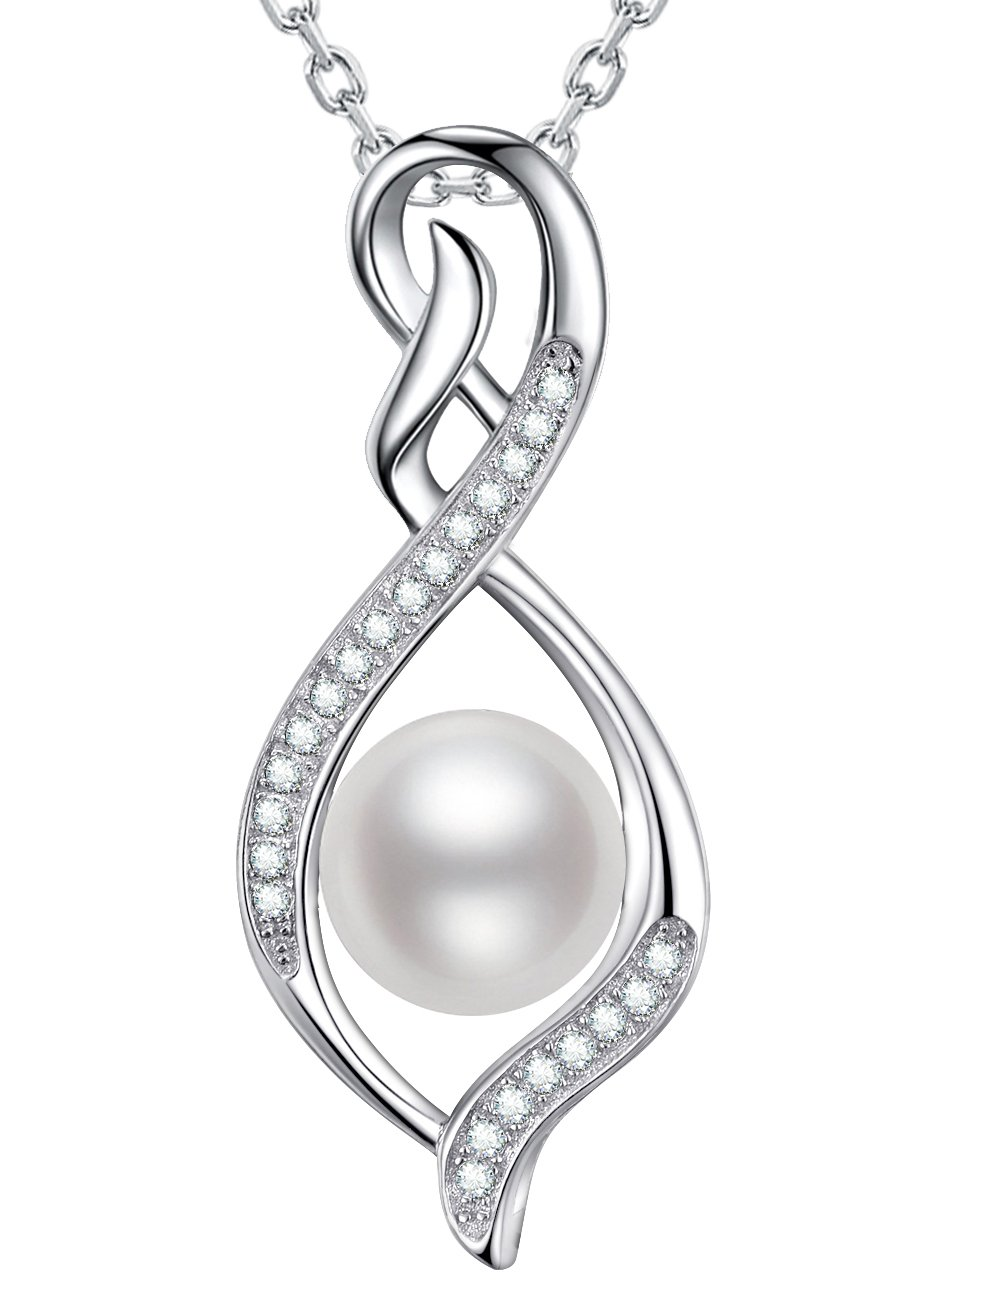 Pearl Necklace Infinity Pendant June Birthstone Sterling Silver Jewelry Birthday Gifts for Her for Wife Anniversary Gift for women